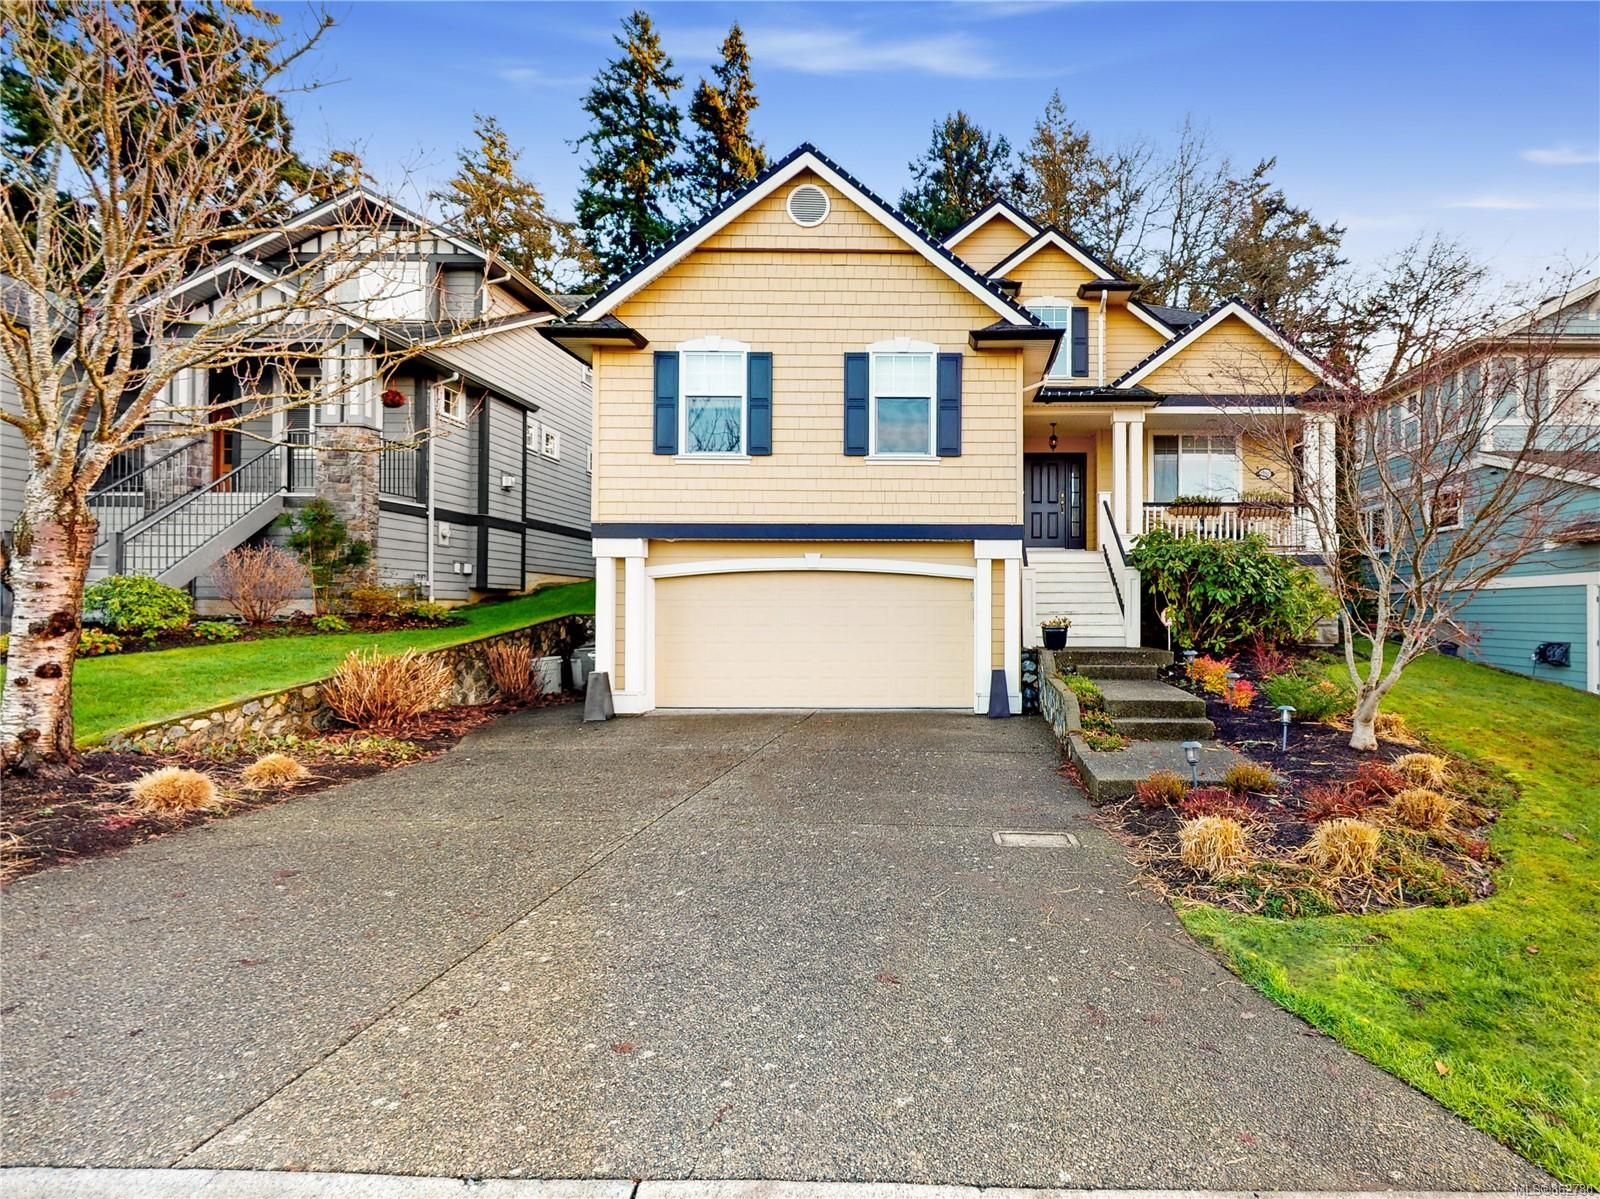 Main Photo: 801 Rogers Way in : SE High Quadra House for sale (Saanich East)  : MLS®# 862780